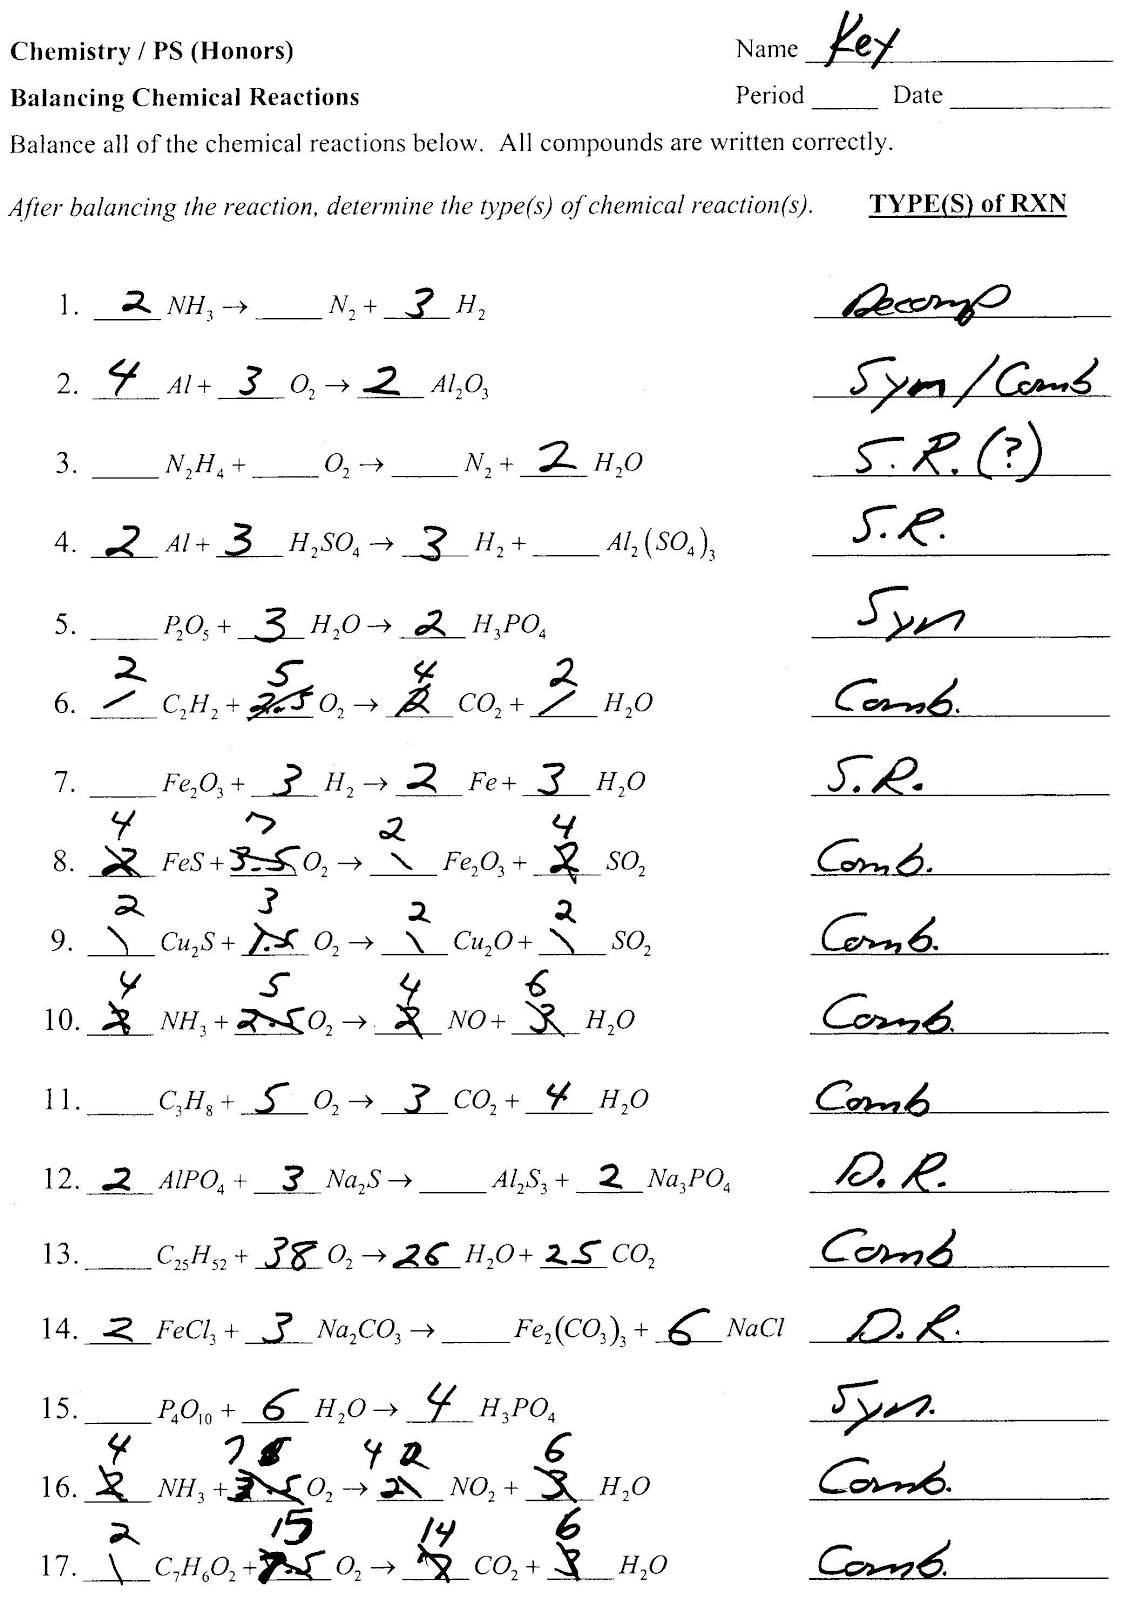 Mr Brueckners Chemistry Class HHS 201112 February 2012 – Types of Reaction Worksheet